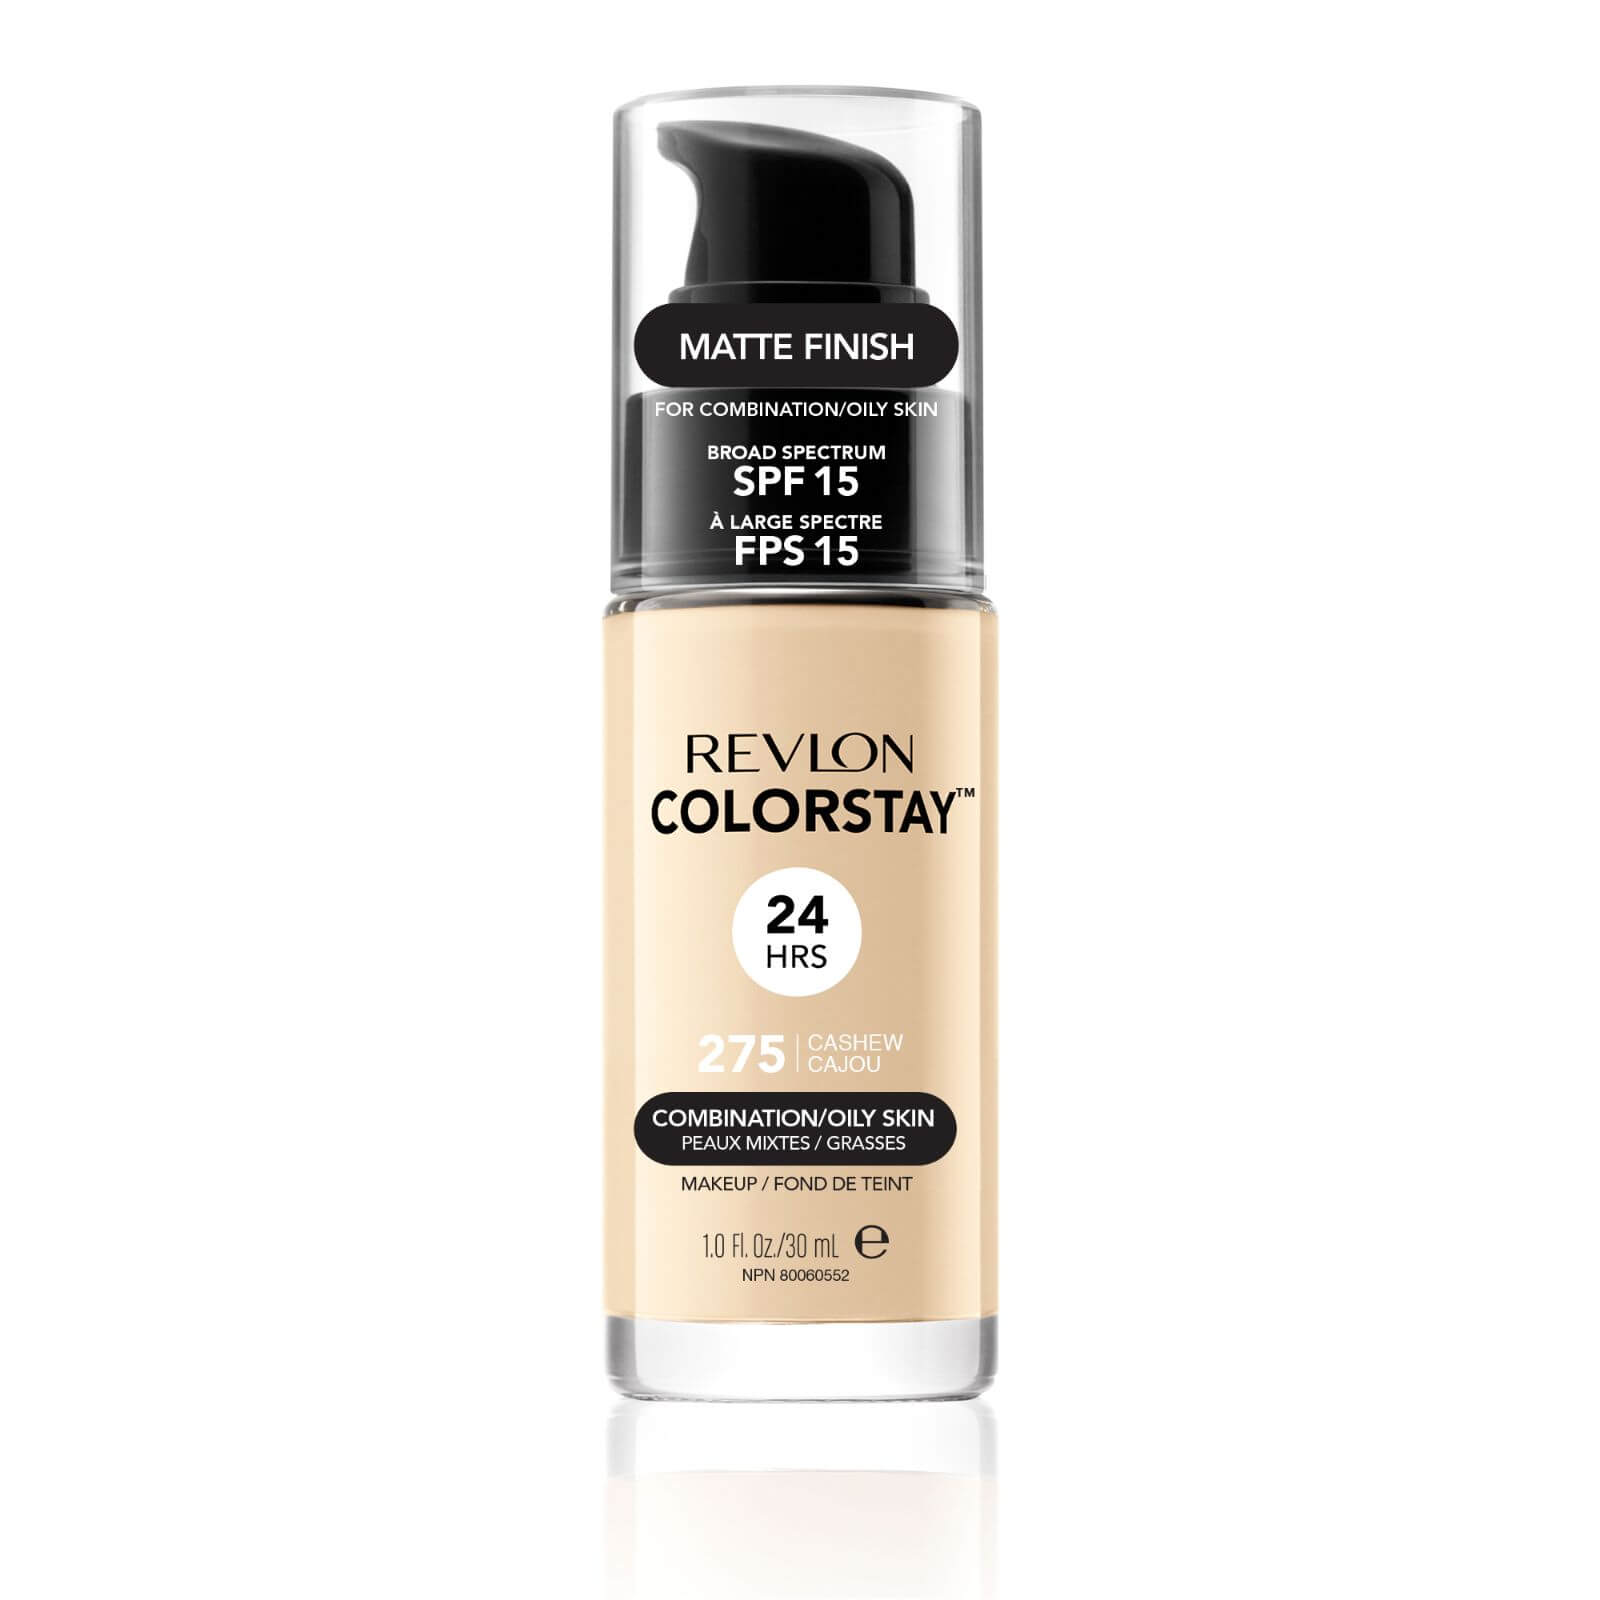 Купить Revlon ColorStay Make-Up Foundation for Combination/Oily Skin (Various Shades) - Cashew